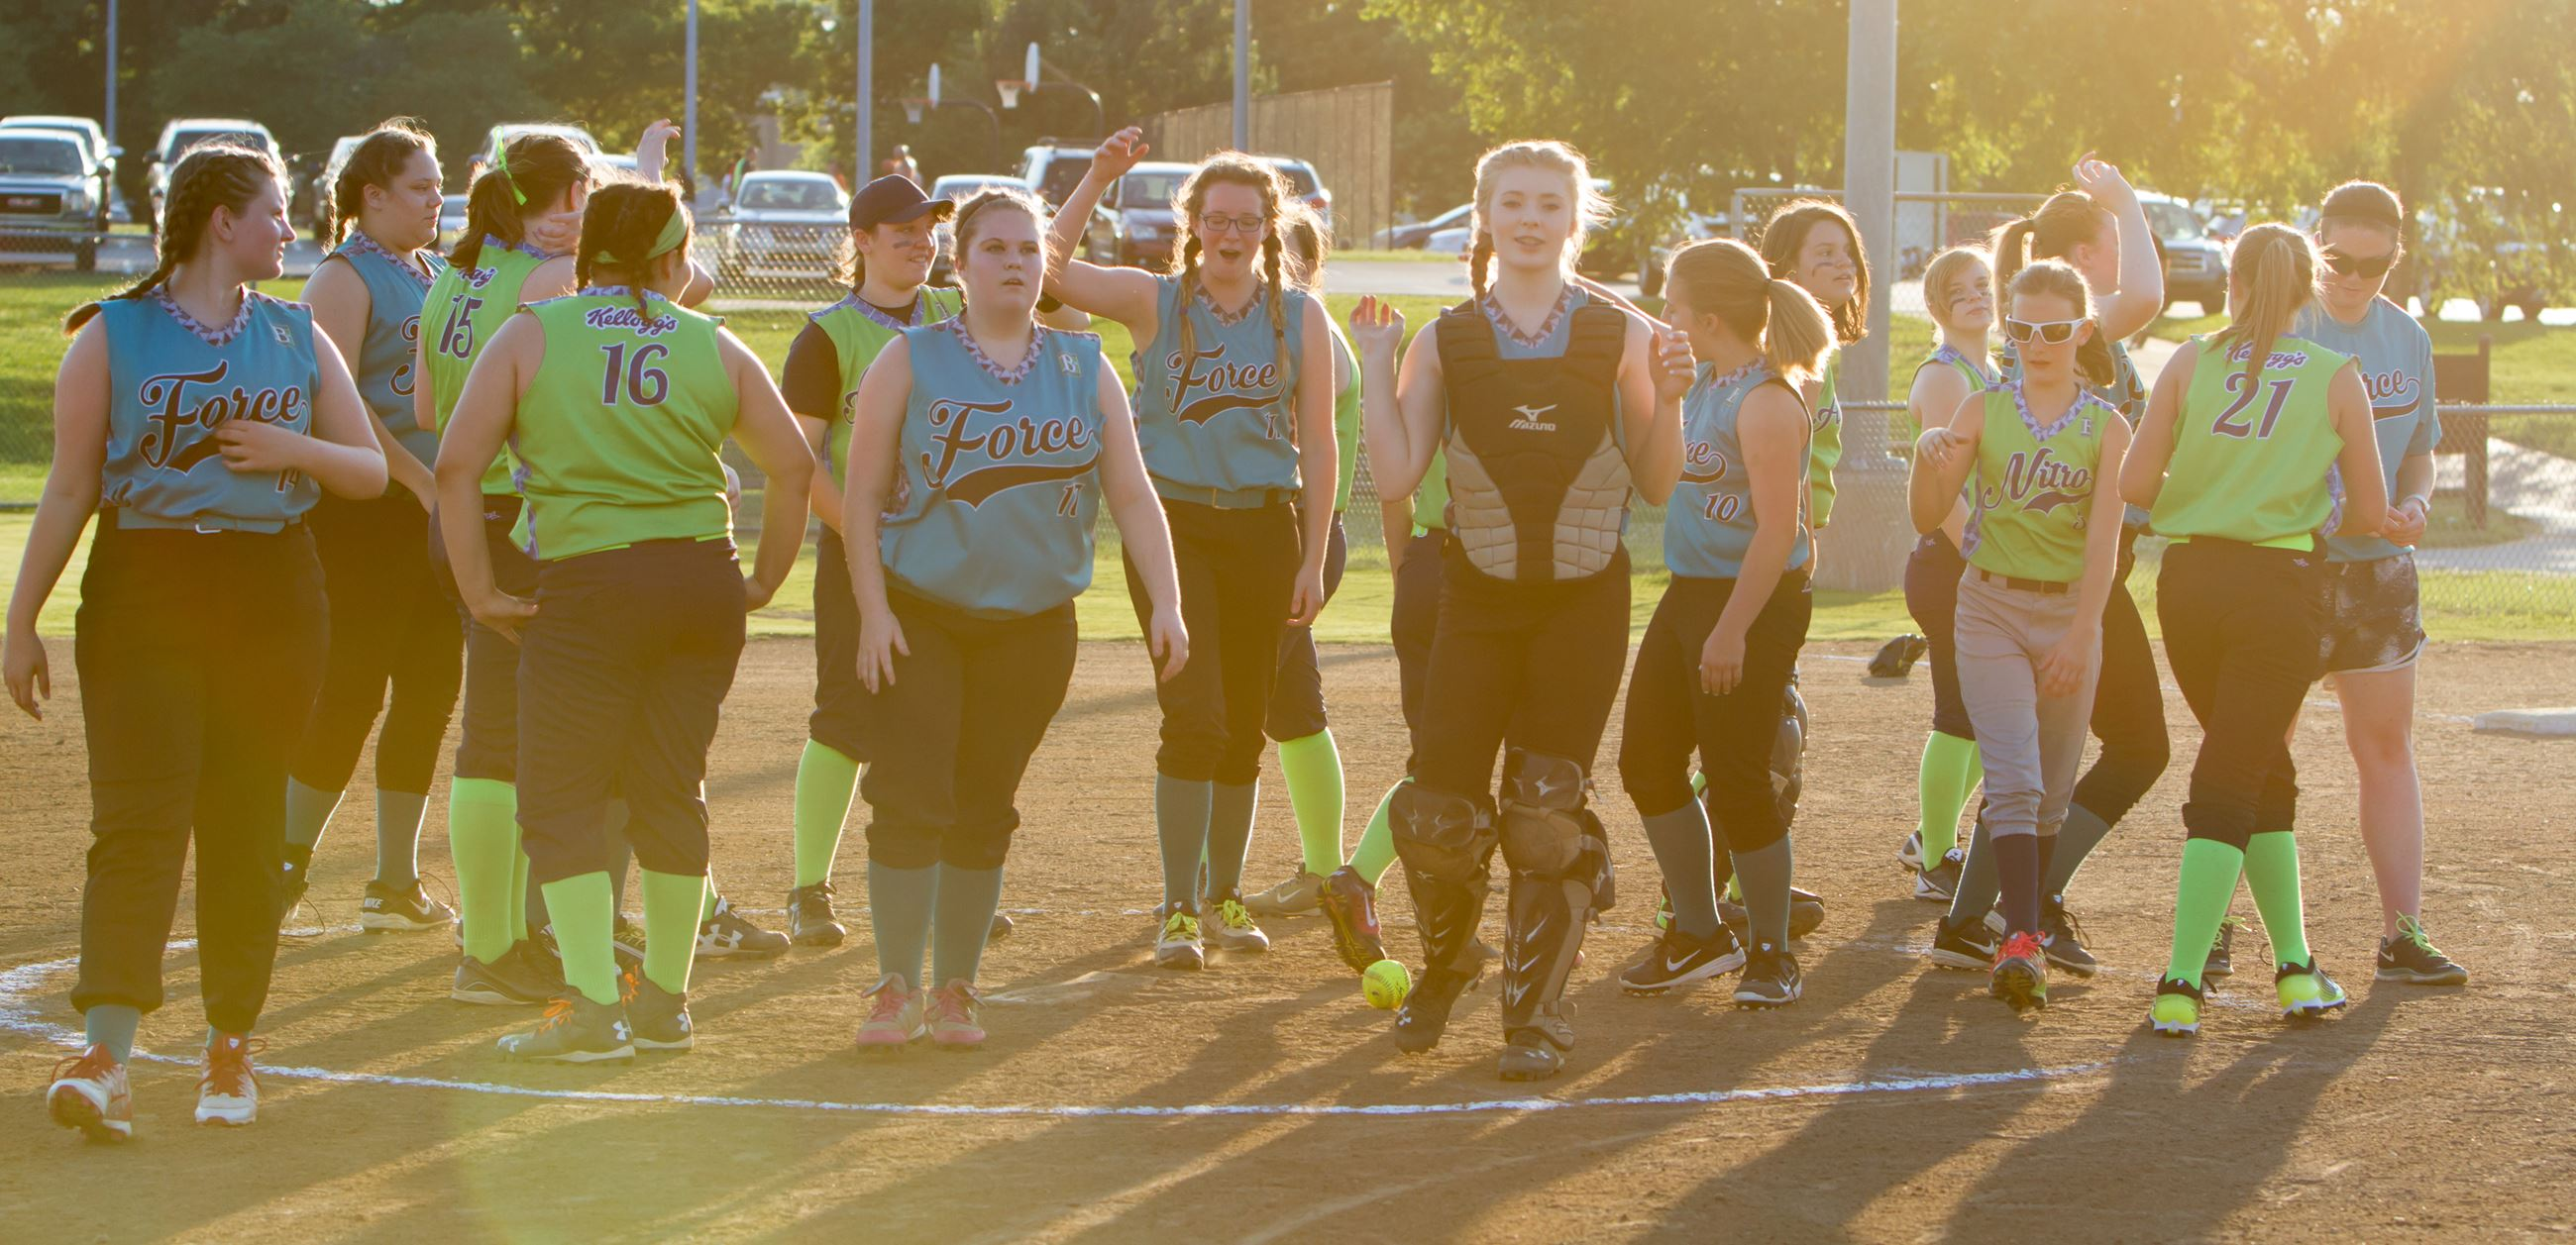 Two girls softball teams mingle on field